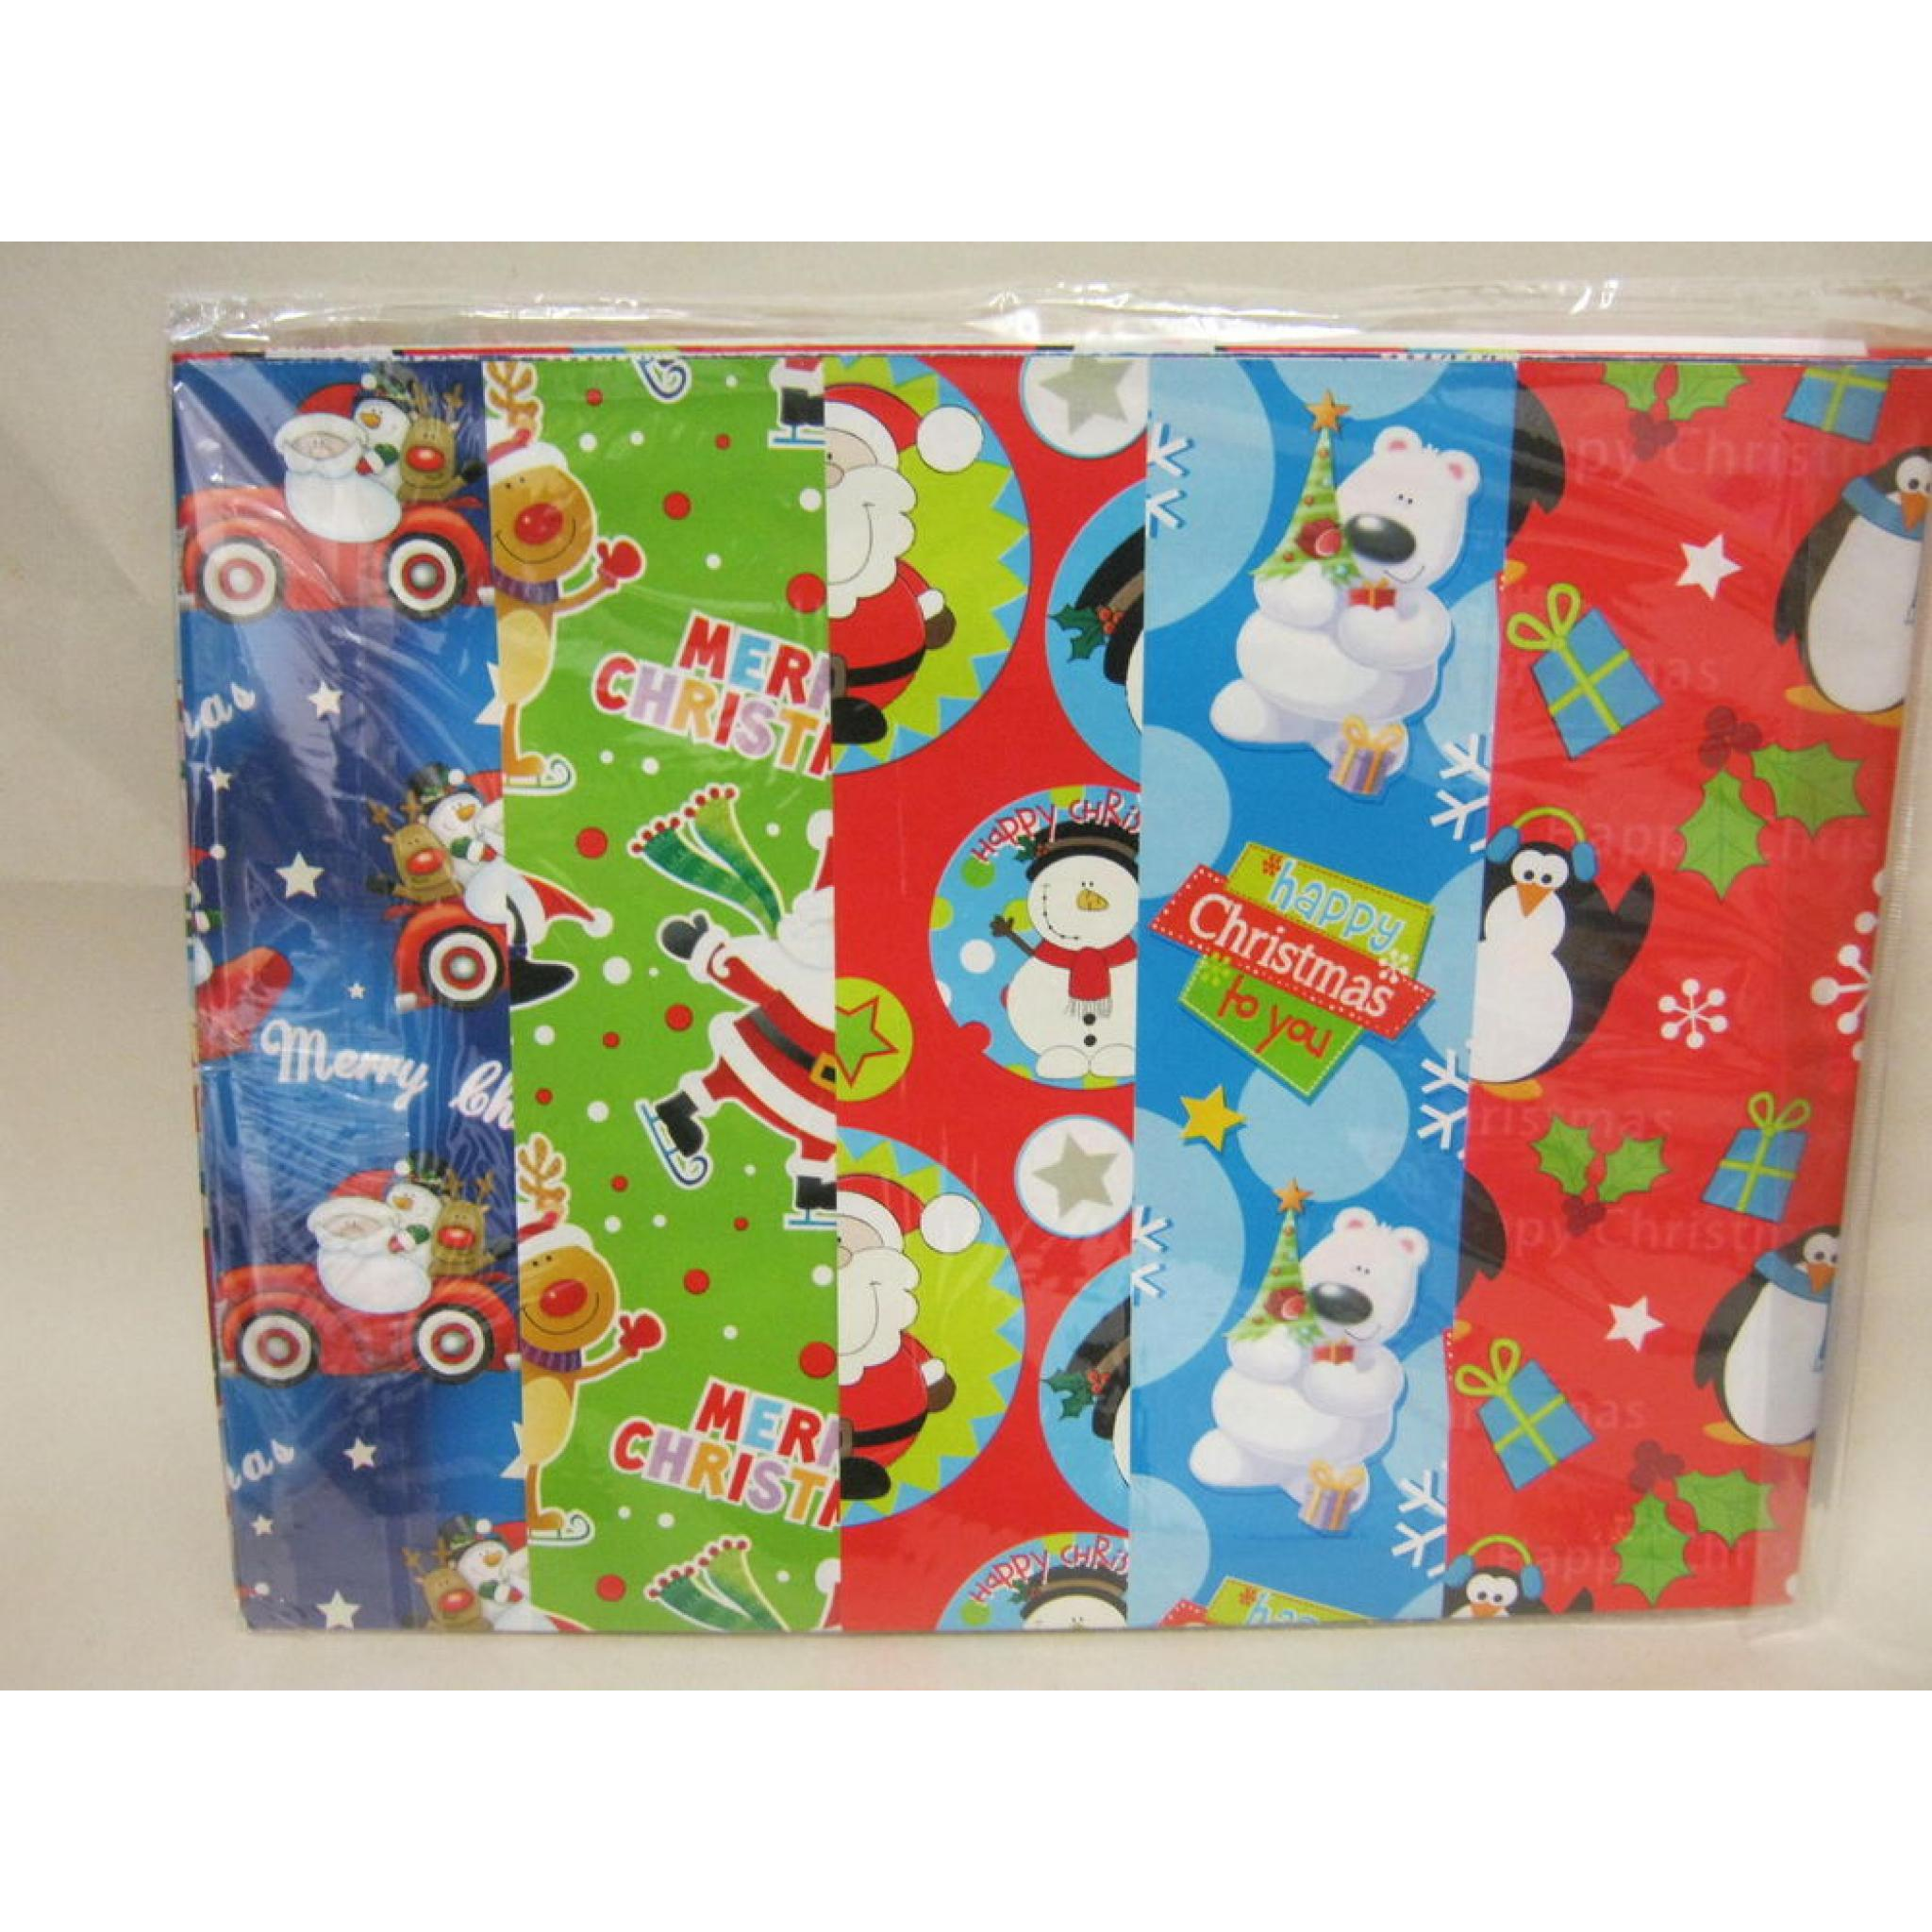 Christmas Gift Wrap Design.New Christmas Gift Wrap 10 Large Sheets 50cm X 70cm Flat Pack Assorted Designs